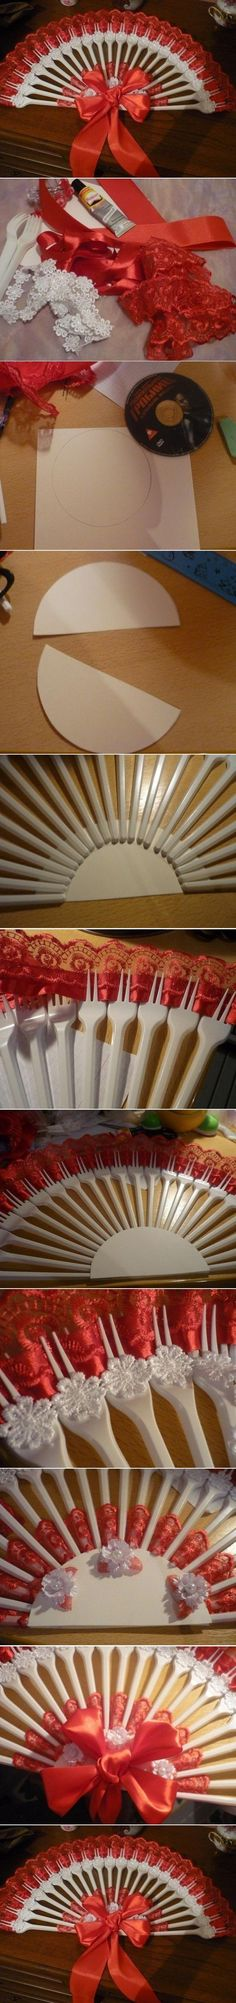 DIY Disposable Fork Fan DIY Disposable Fork Fan by diyforever